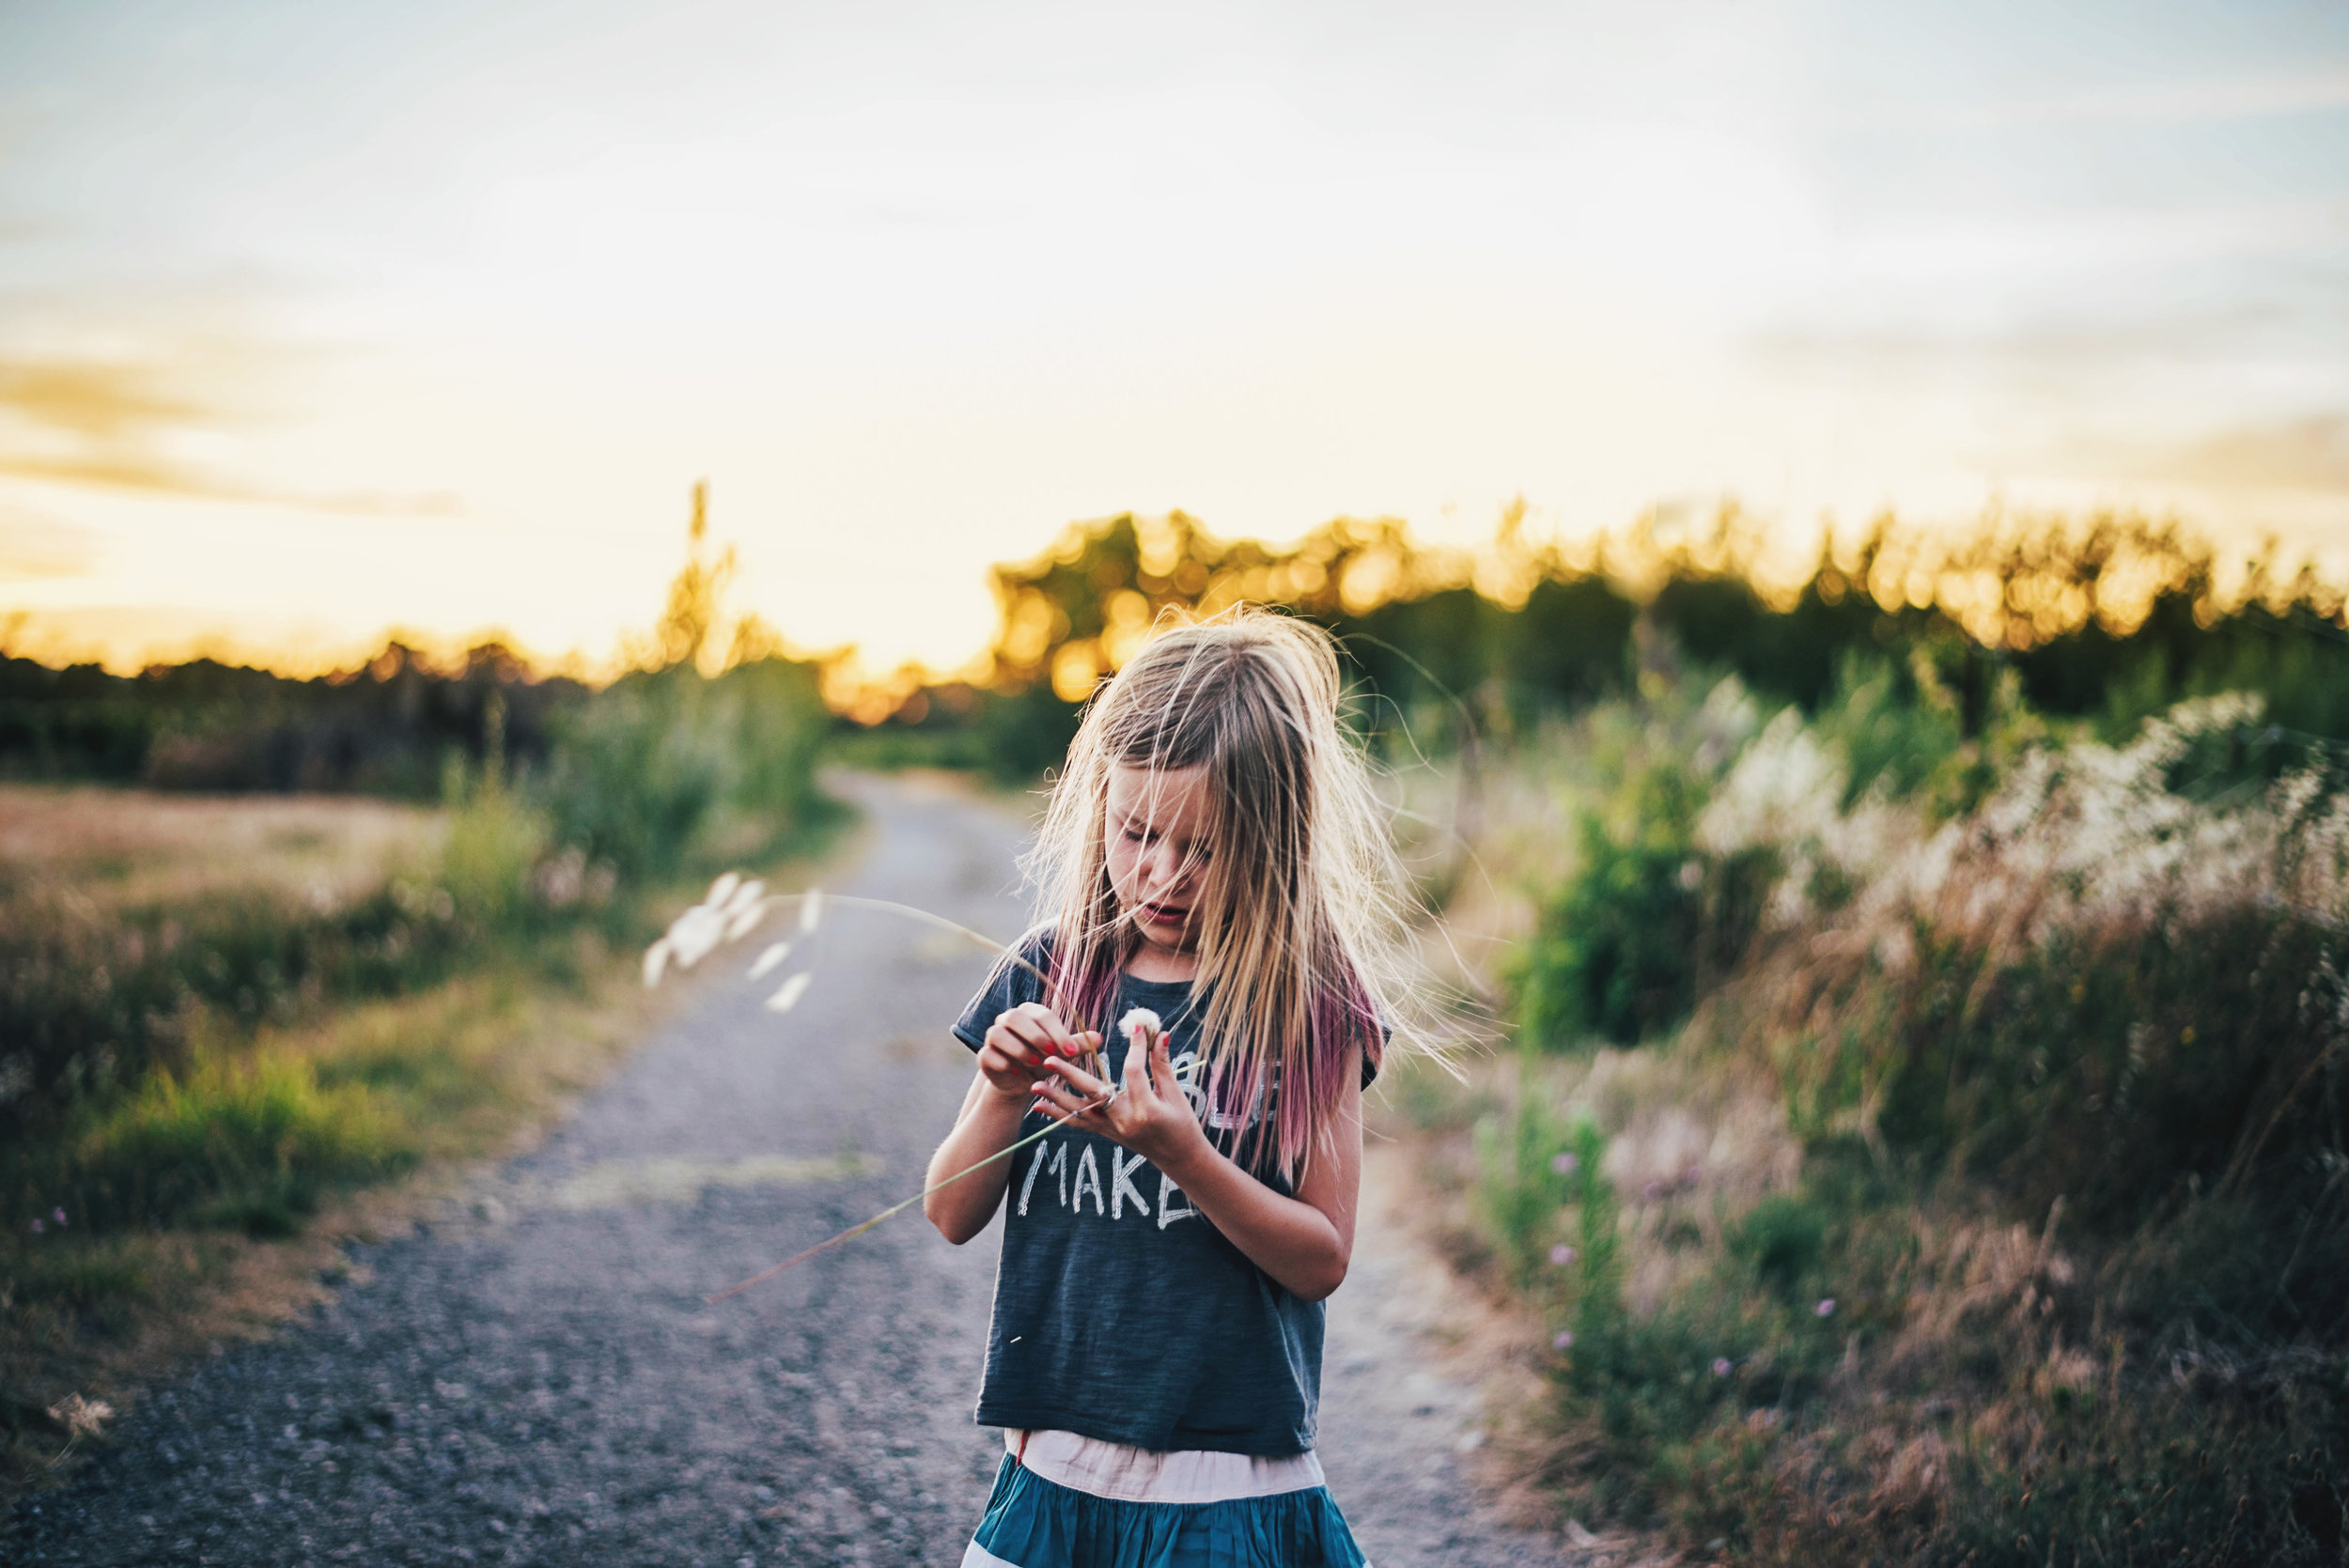 Young girl on country path holds long grass Essex UK Documentary Portrait Photographer